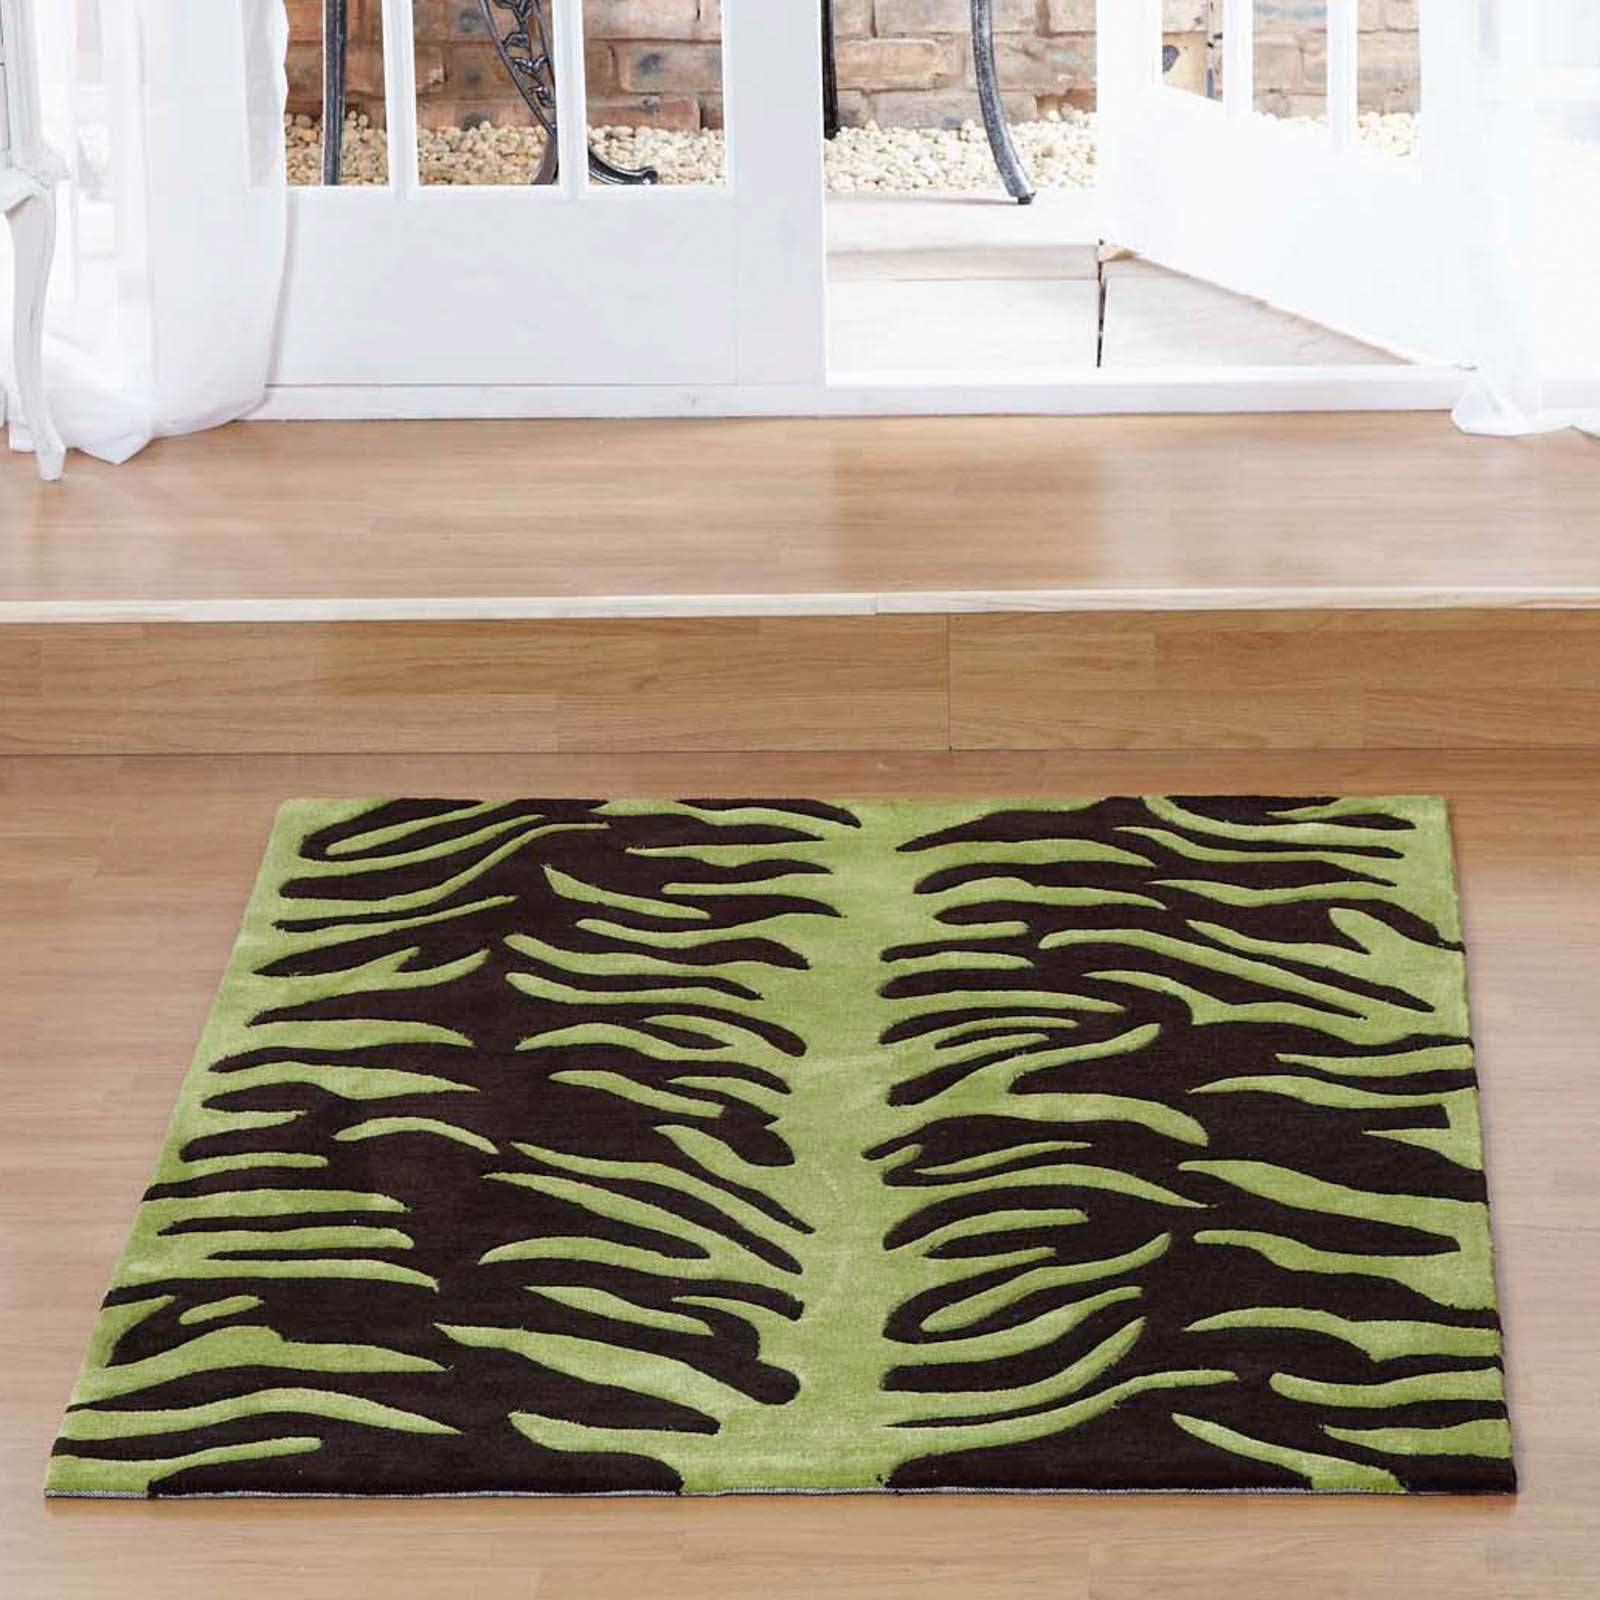 Aspire Tigre Rugs in Chocolate Green